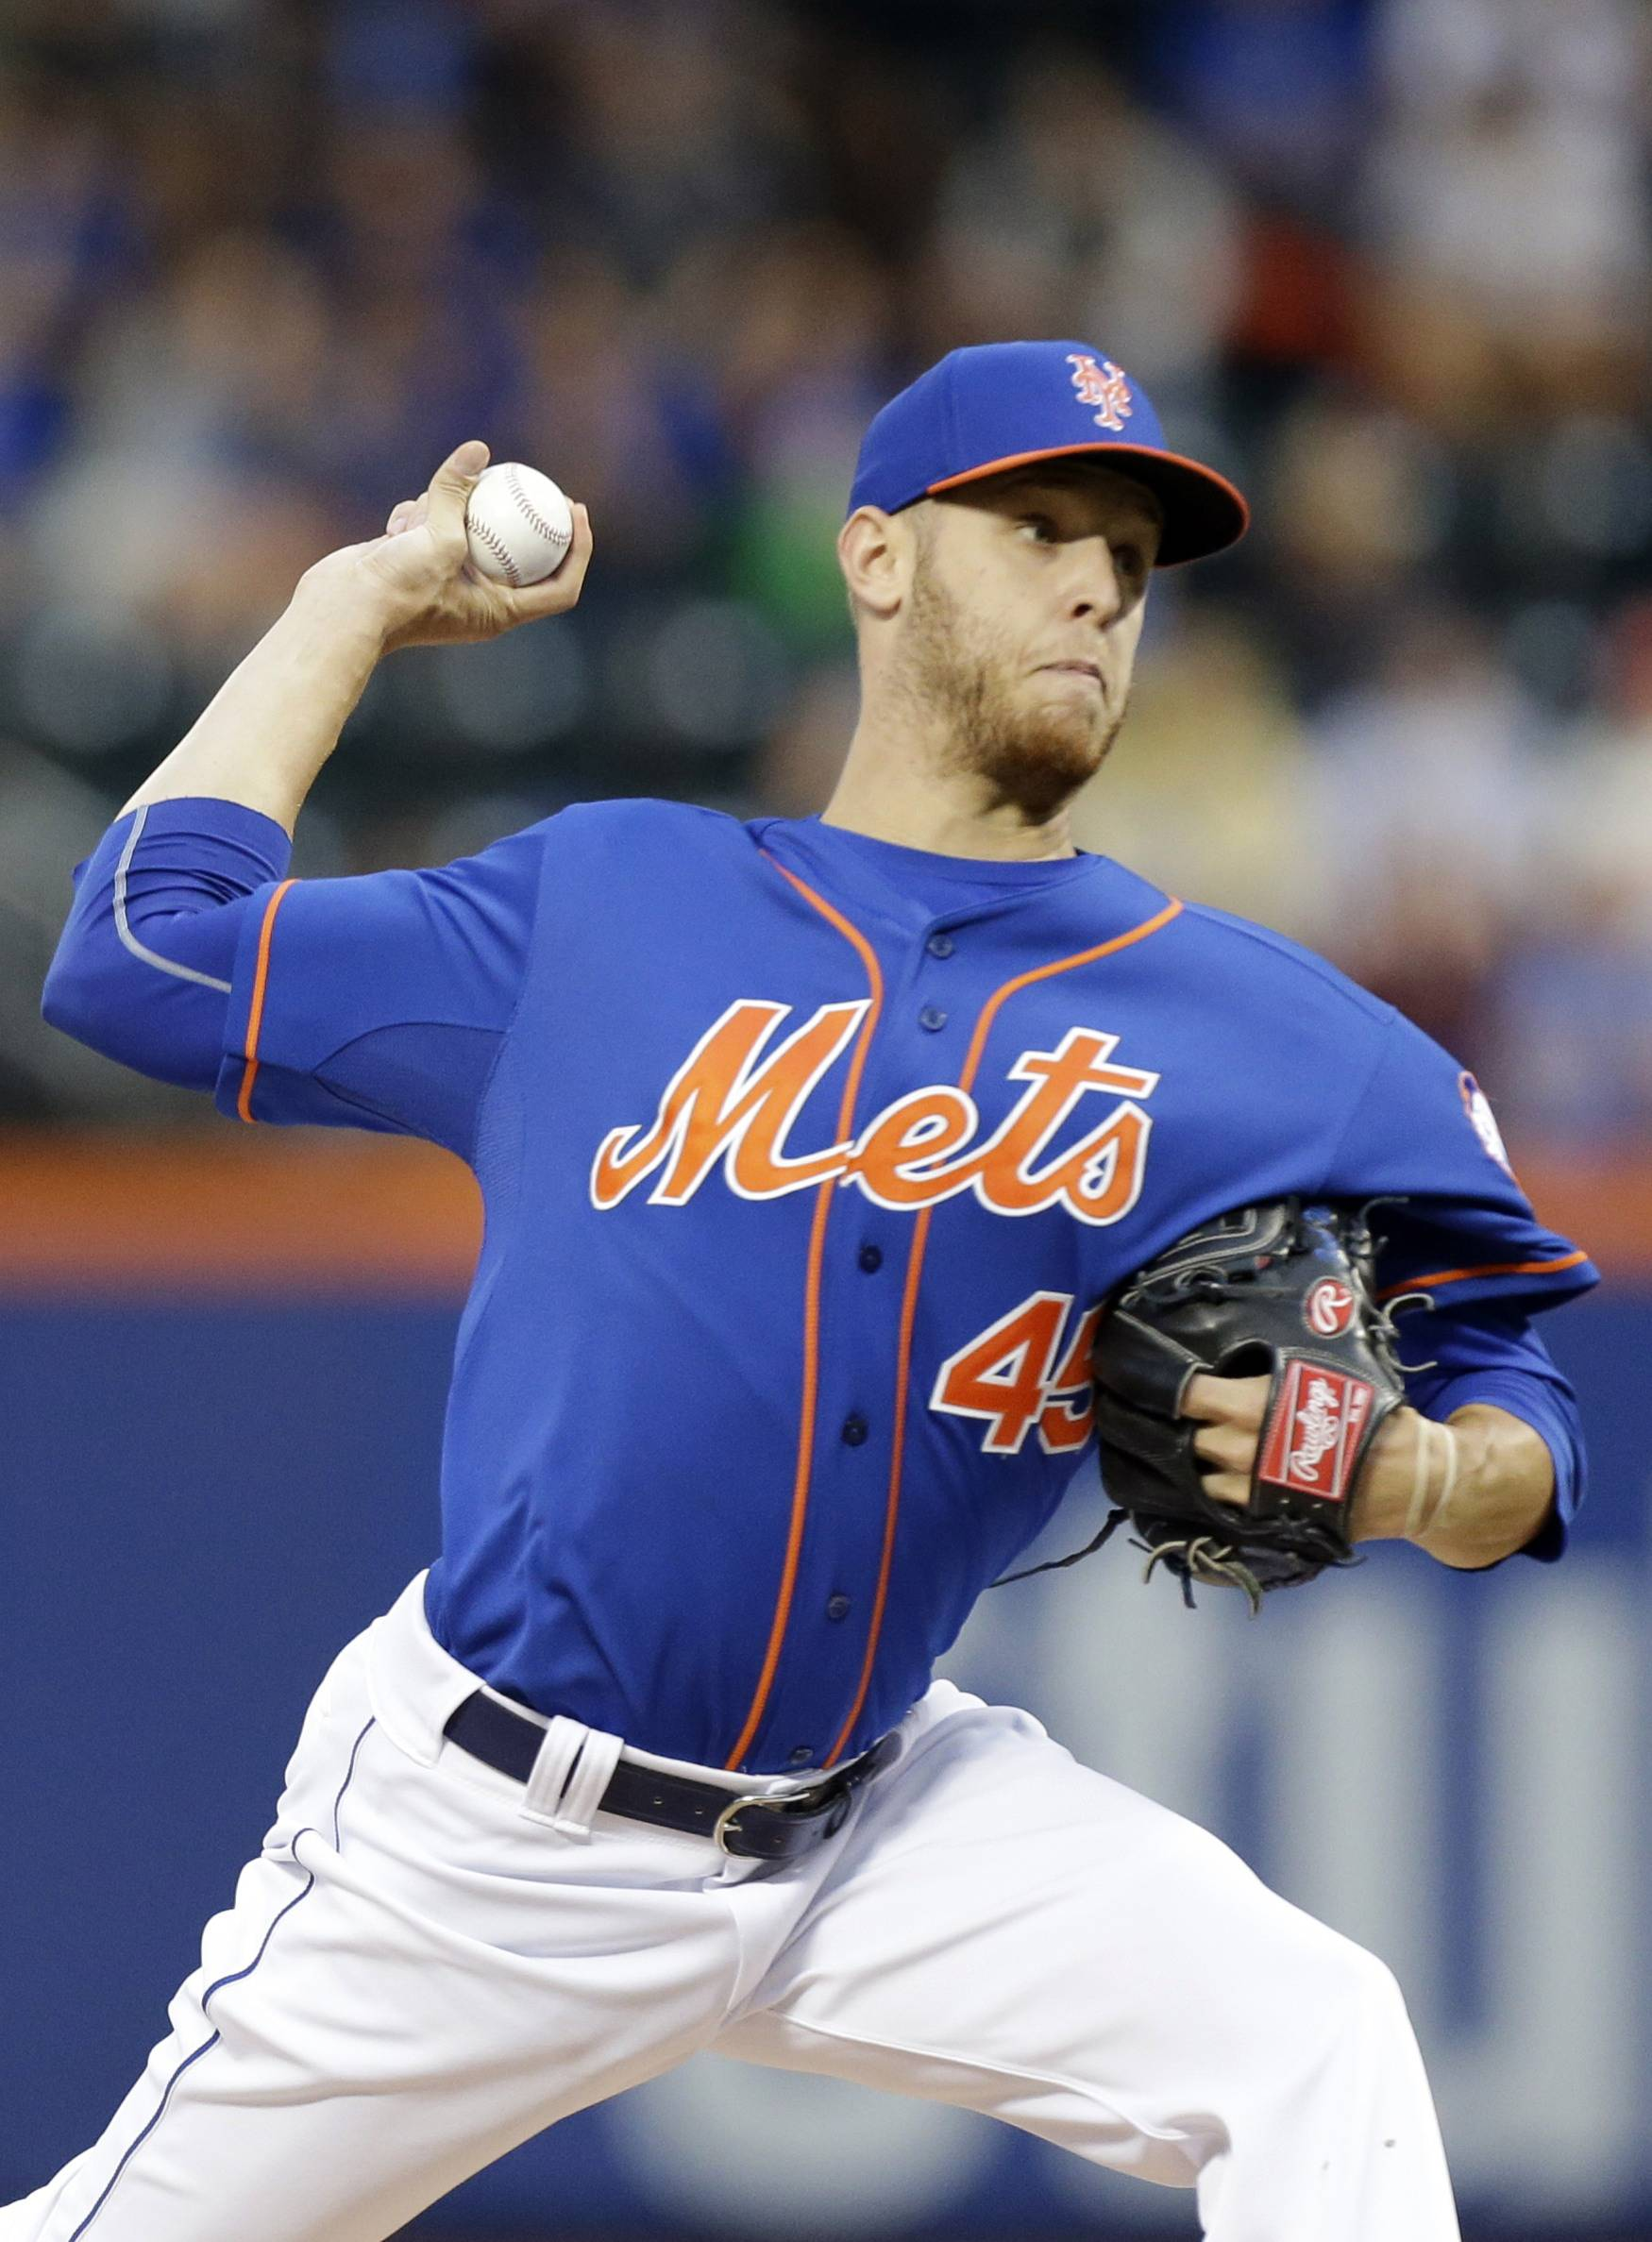 Mets starter Zack Wheeler walked four and hit a batter but overpowered the Cubs on Friday to win his fifth consecutive decision.